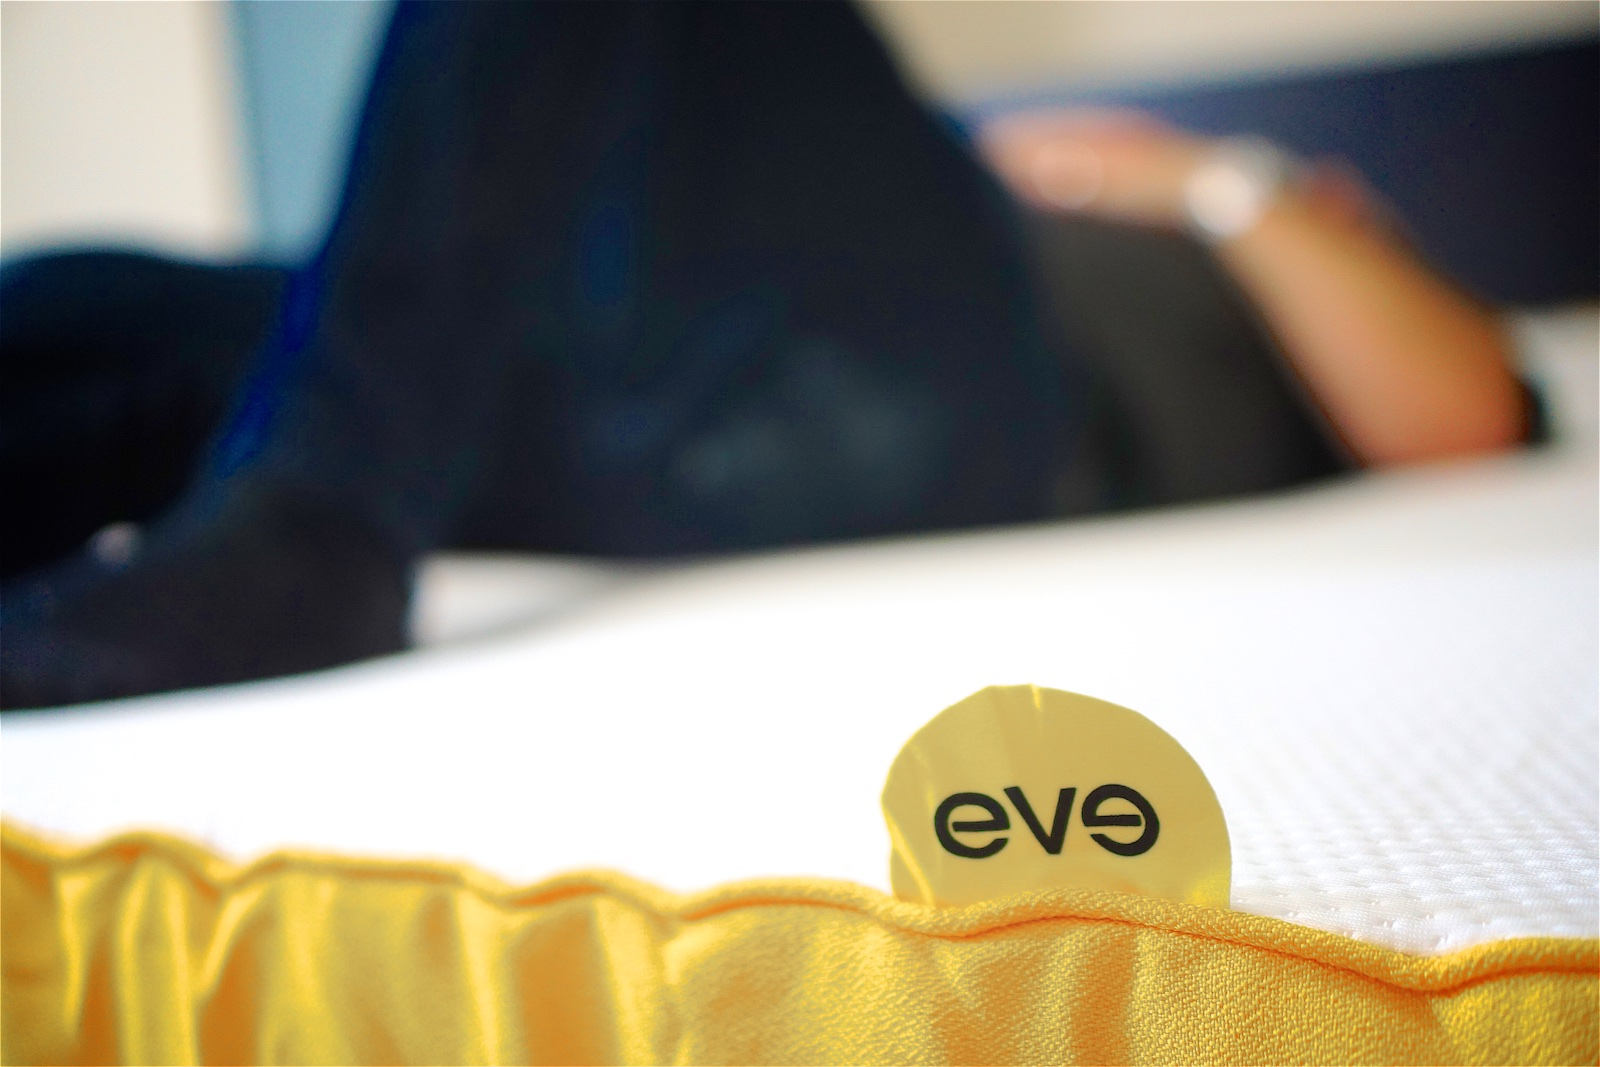 eve mattress review - TheFebruaryFox.com